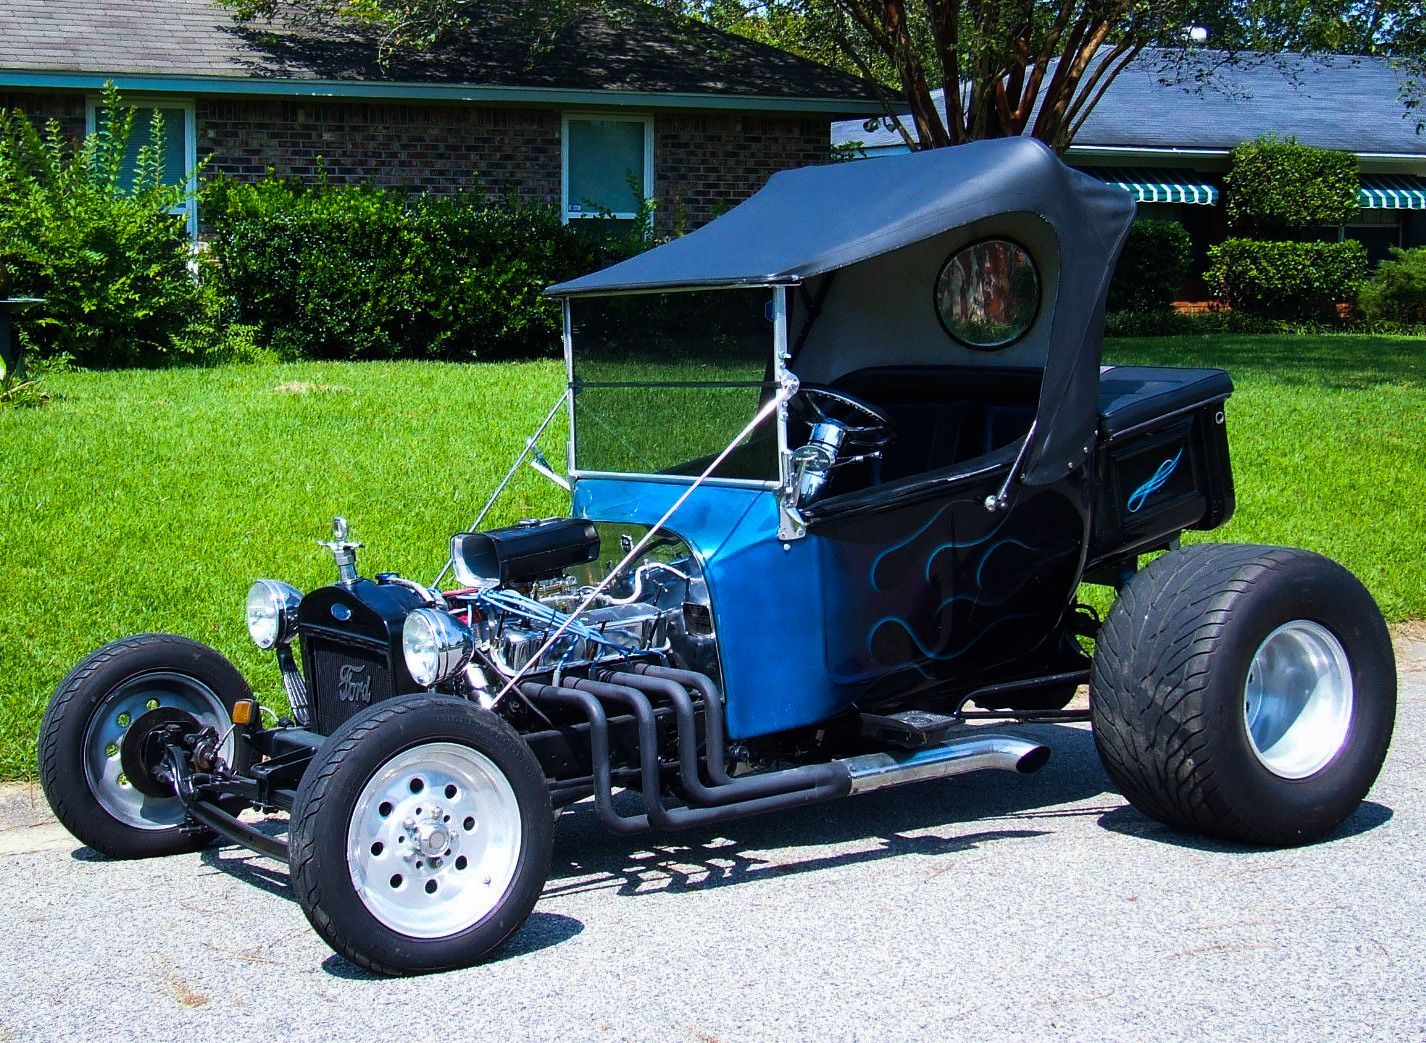 1927 ford t bucket roadster convertible hot rod. http://ebay